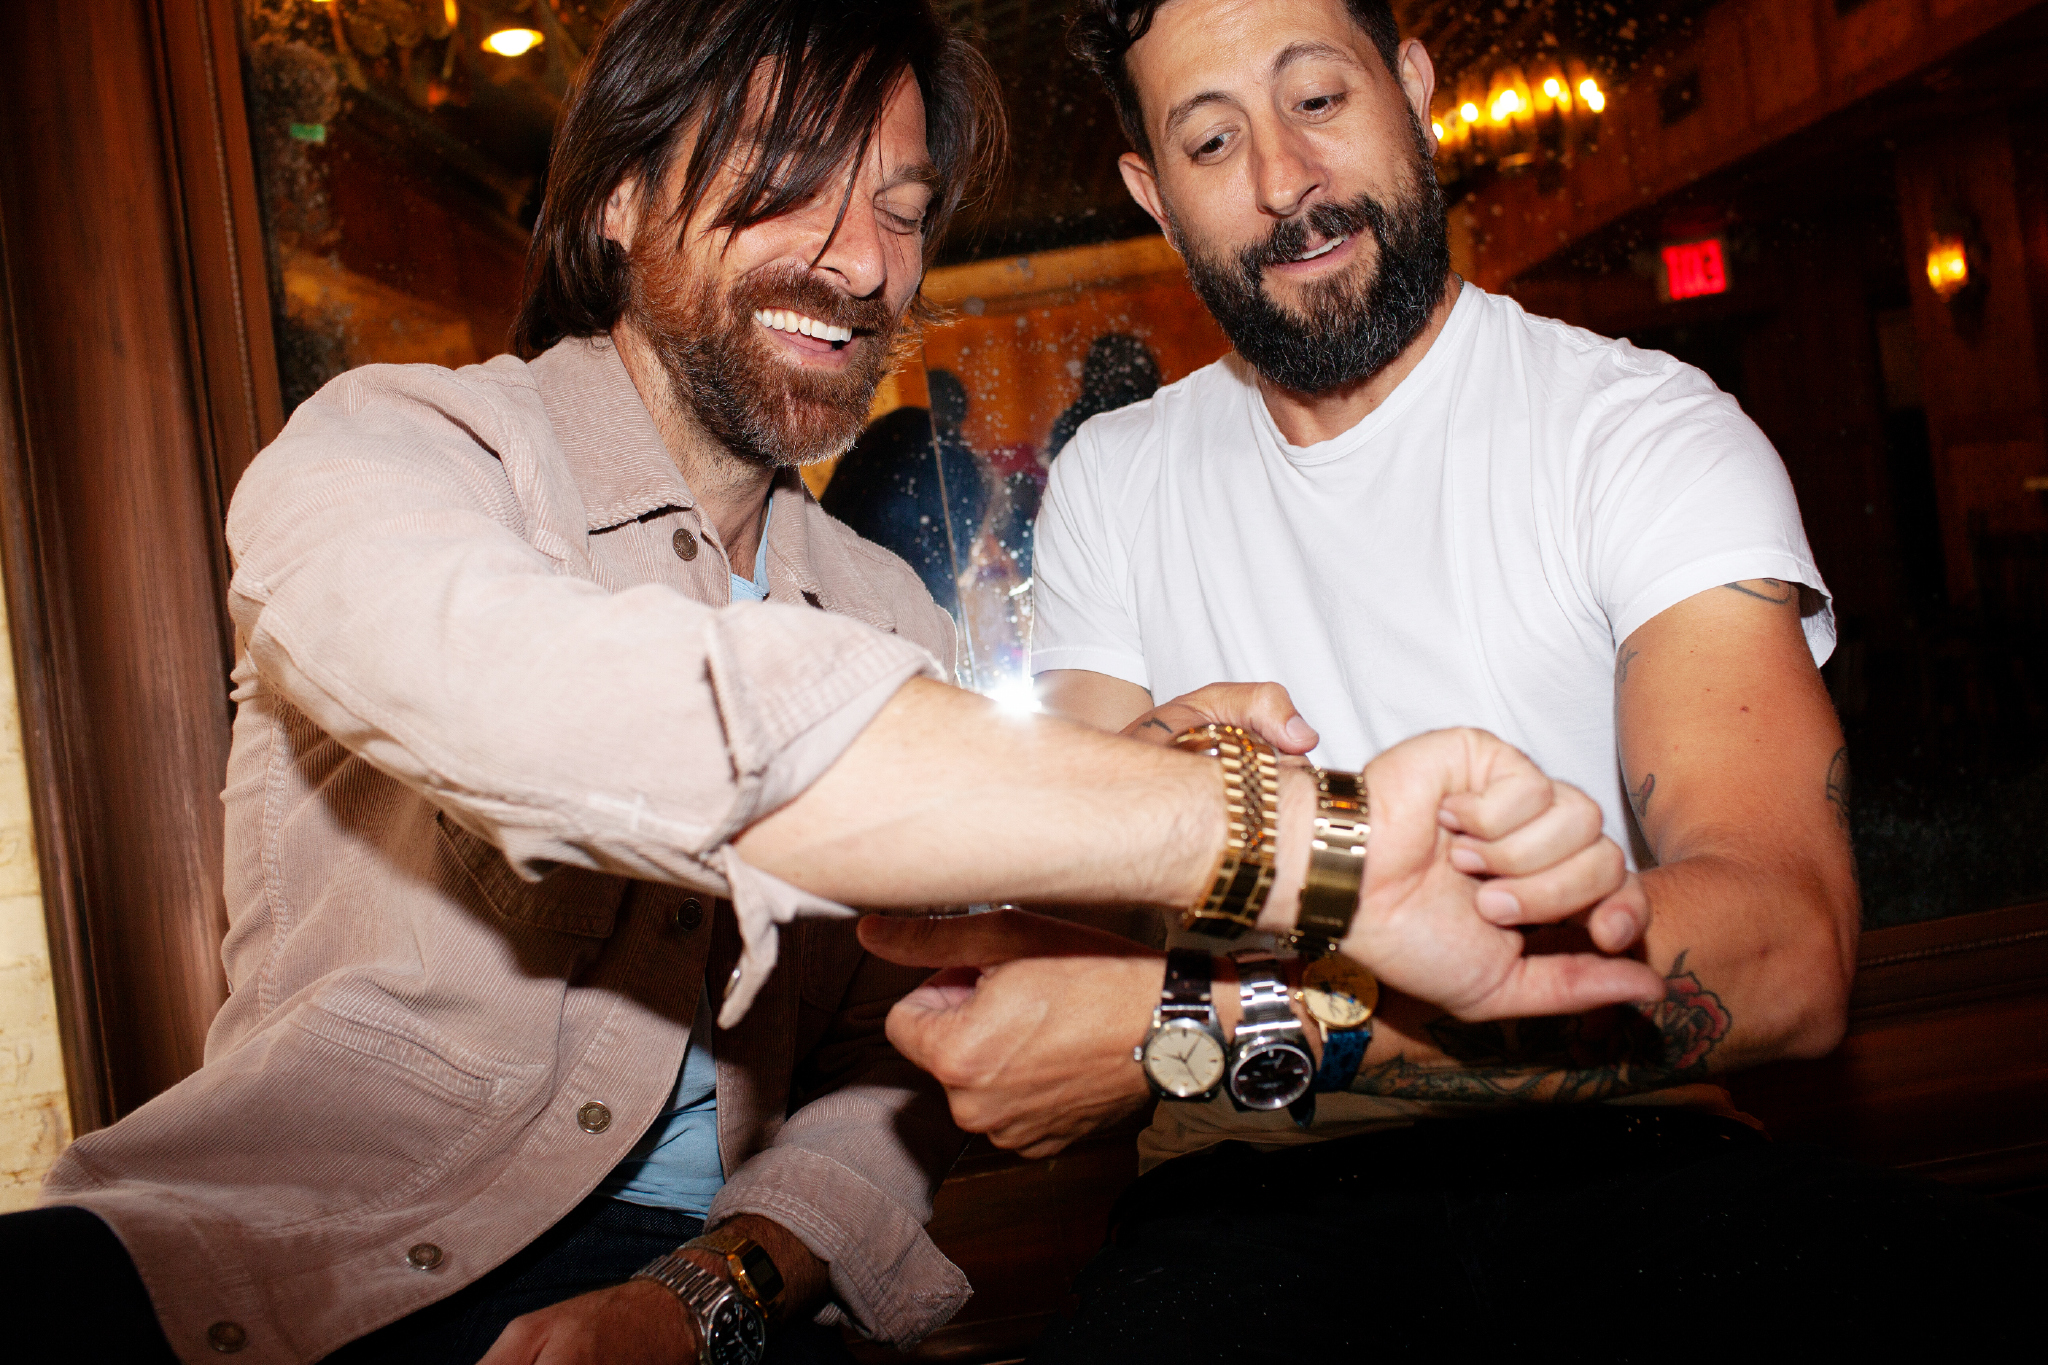 Geoff Sprung and Matthew Ramsey of Old Dominion compare watches.